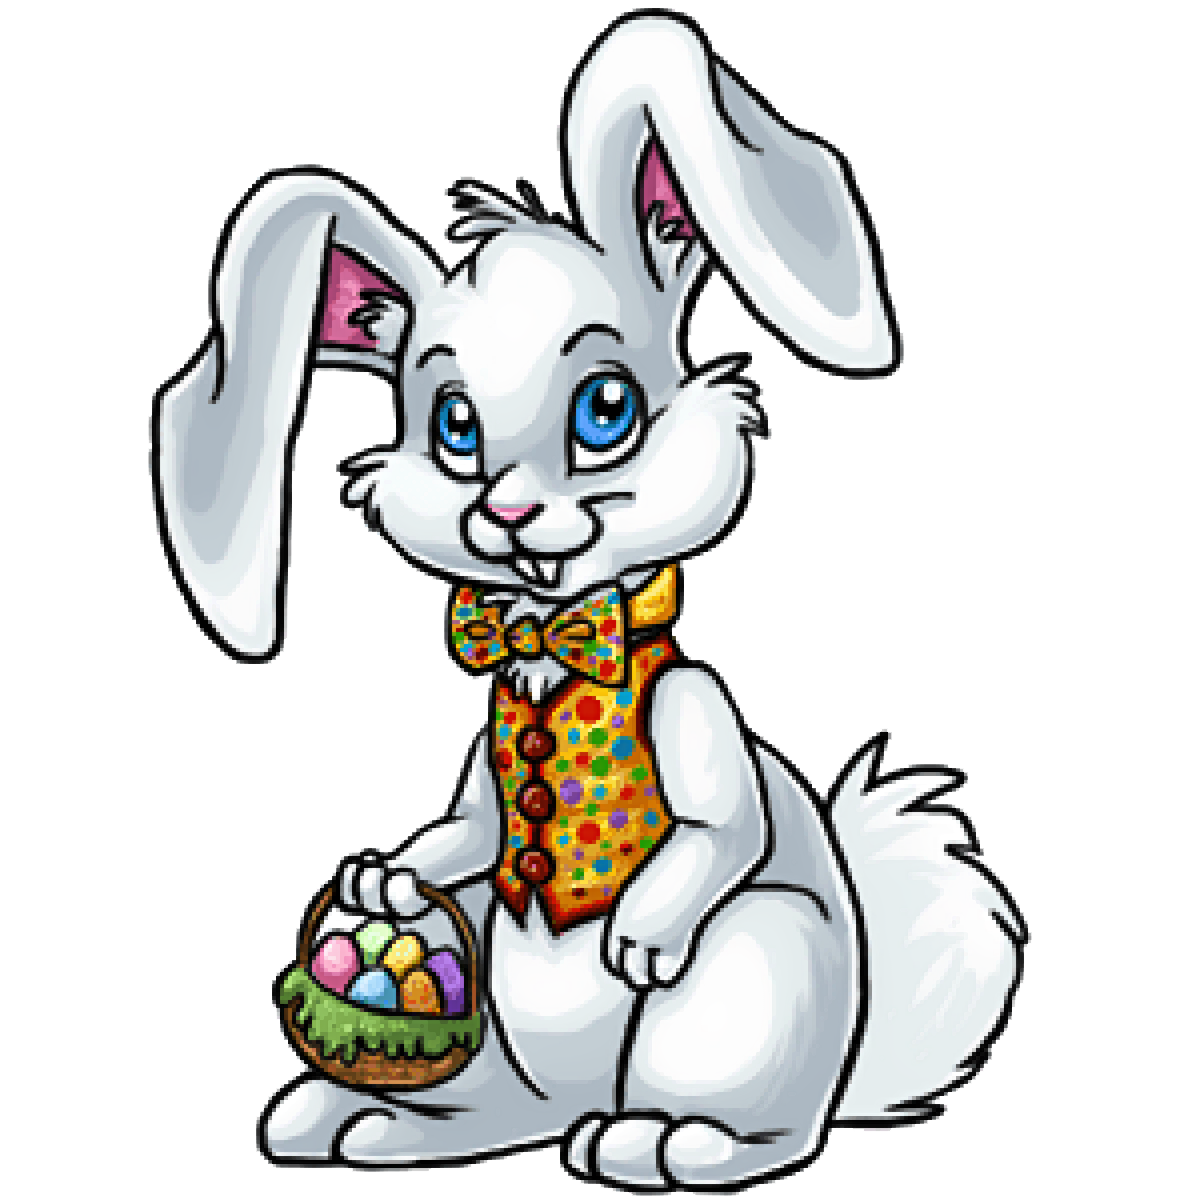 Hunting clipart rabbit hunting. Images for easter vector